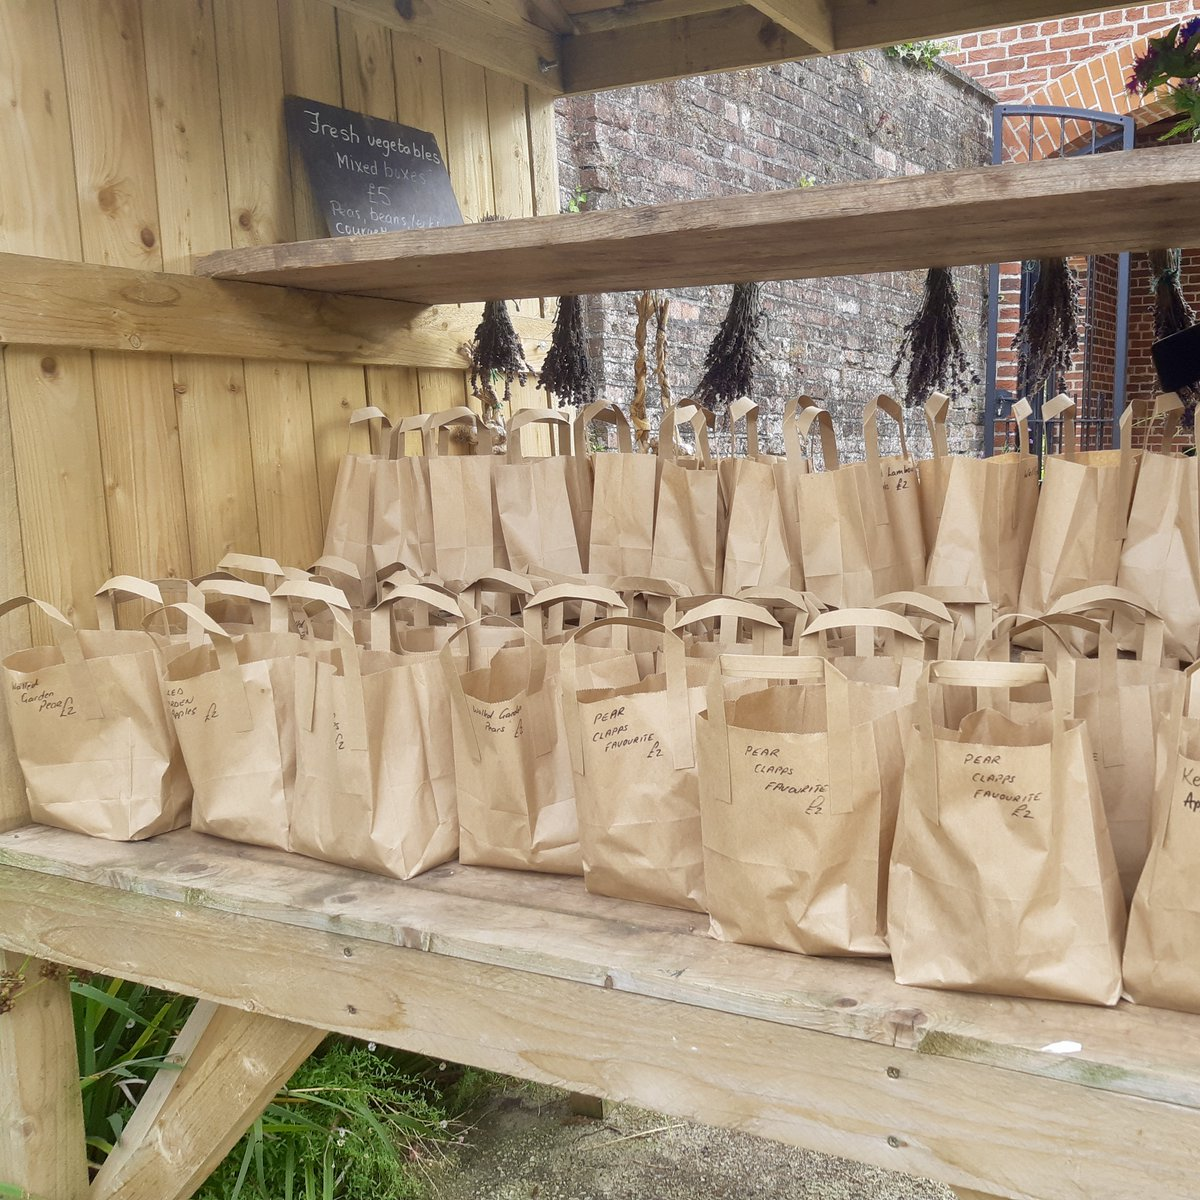 The start of September means harvest time in the Walled Garden! Our busy team have picked the first apples, pears and plums of the season, which are now bagged and ready for sale on our garden cart 🍎🍐